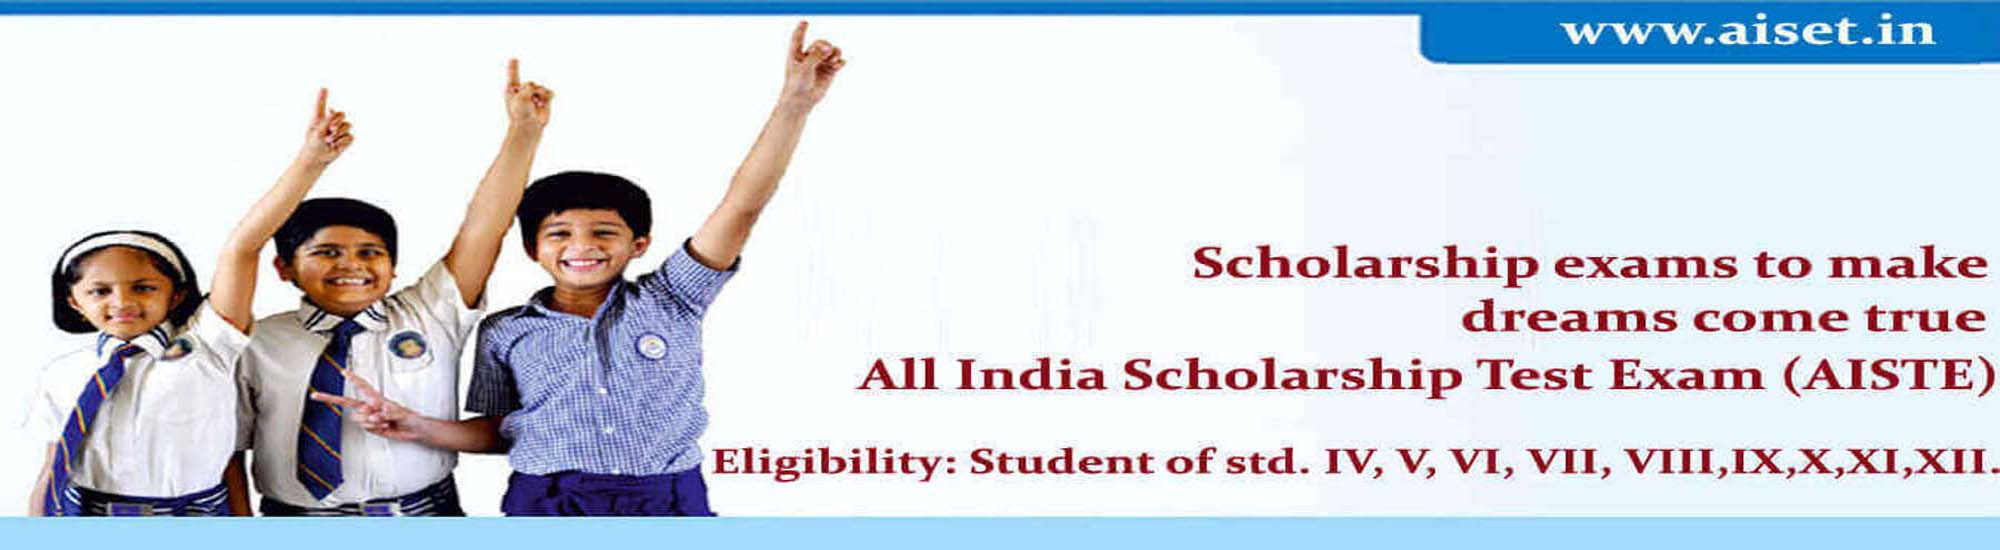 WEST BENGAL scholarship portal